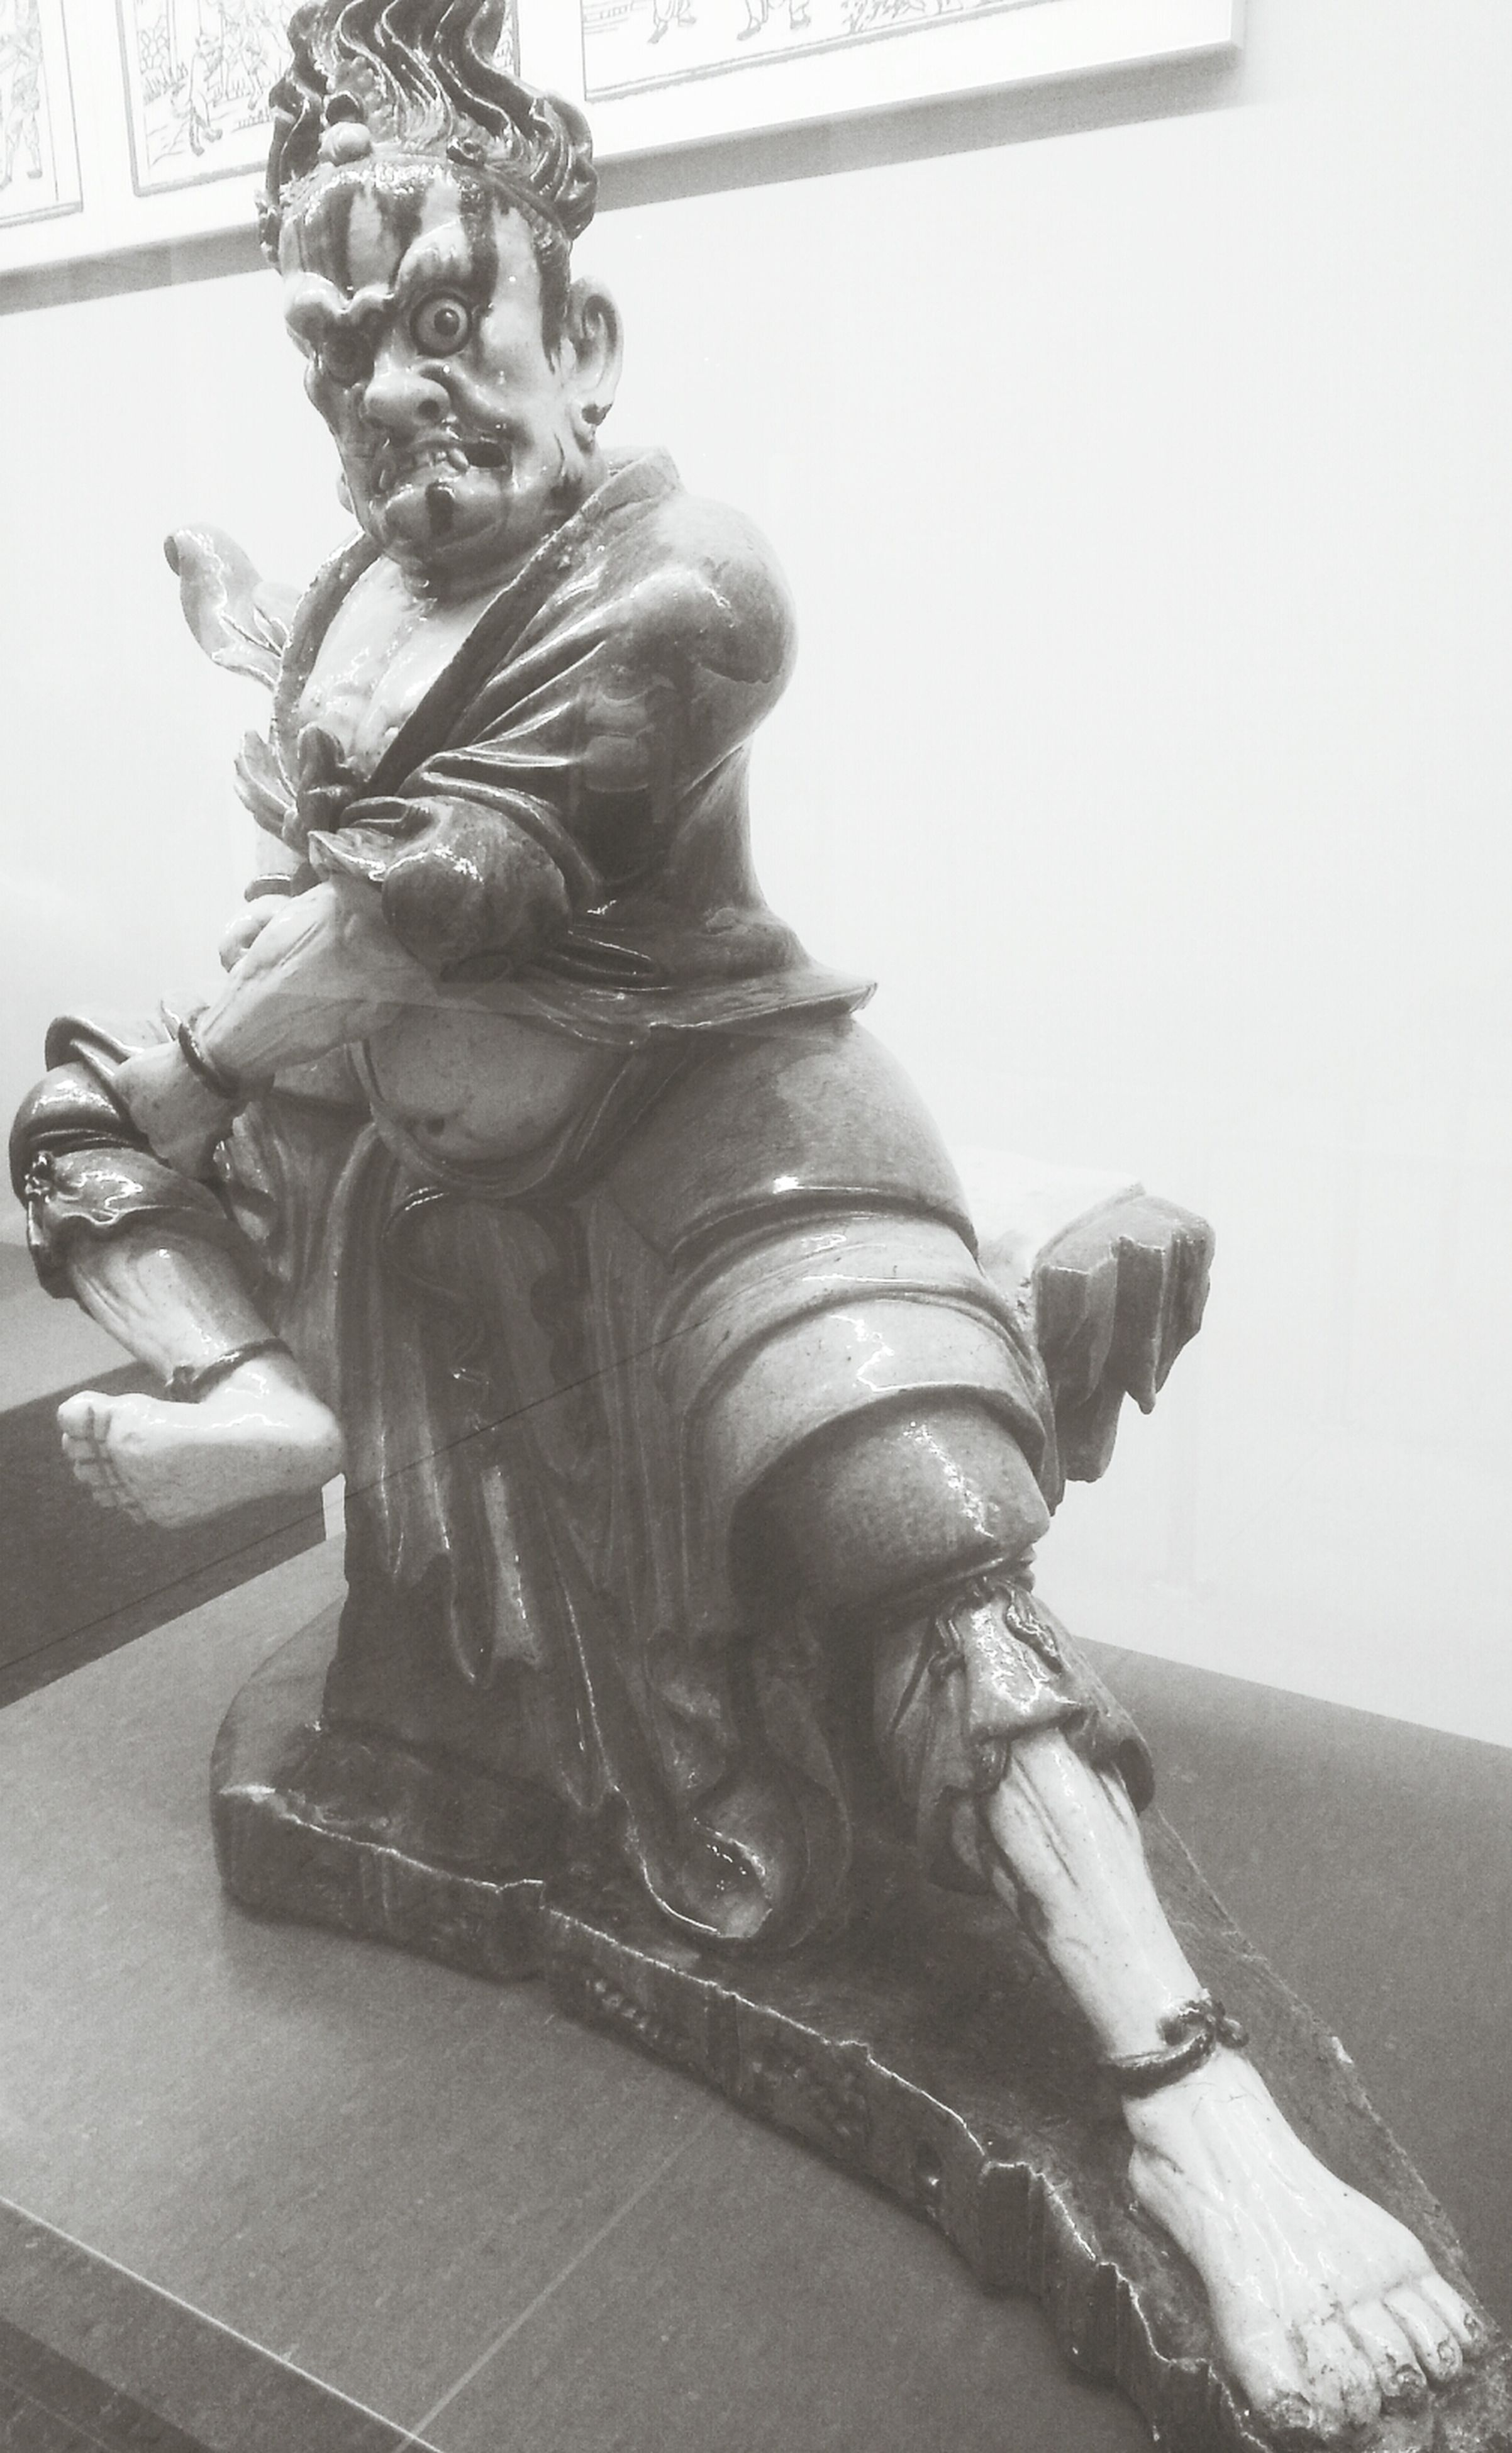 statue, human representation, sculpture, indoors, art and craft, art, creativity, animal representation, architecture, low angle view, craft, no people, built structure, wall - building feature, home interior, close-up, carving - craft product, sunlight